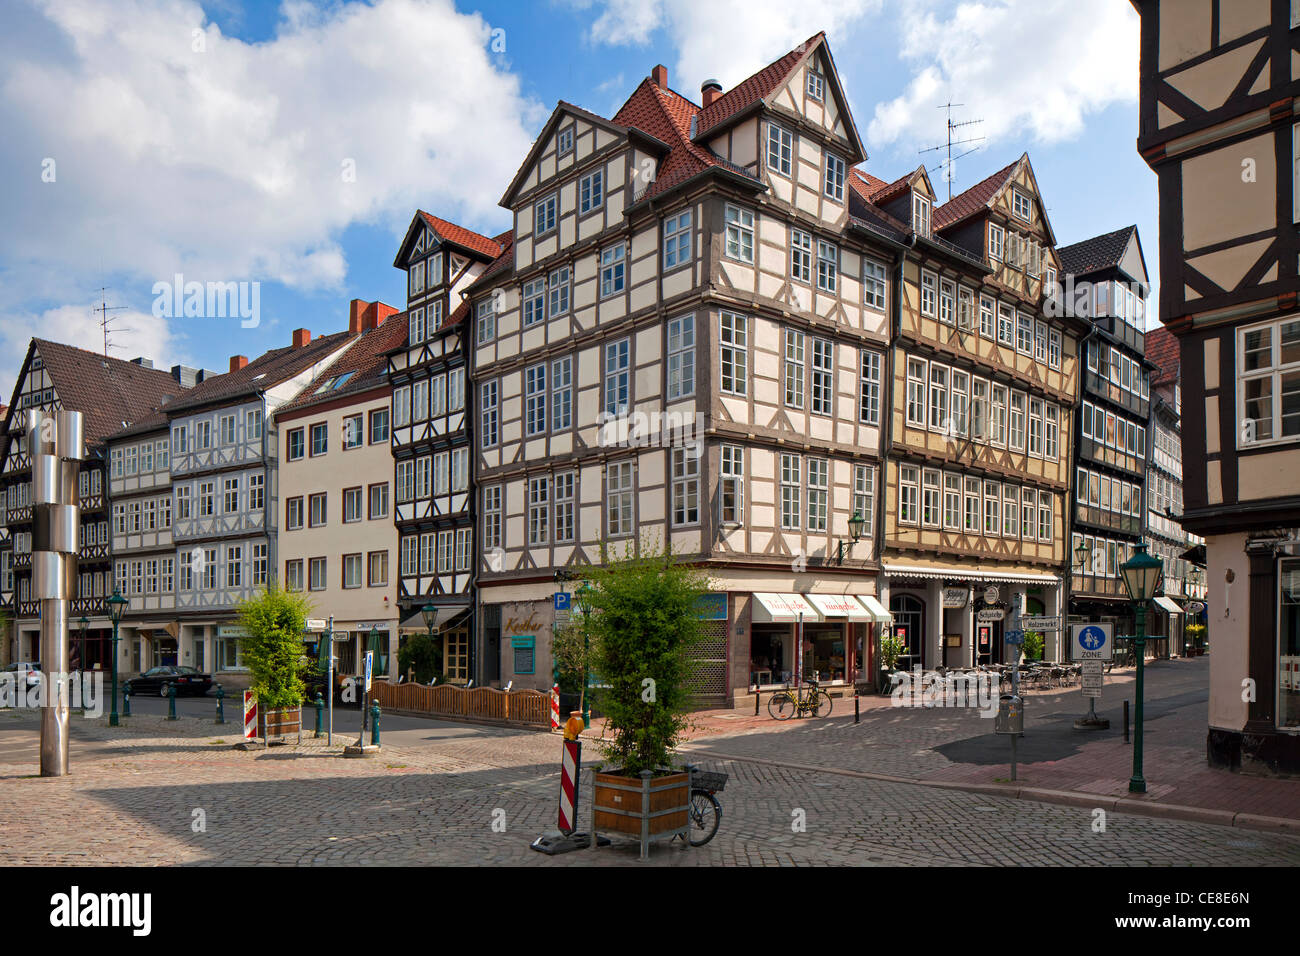 Kramerstraße with half-timbered houses in the historic old town, Hannover, Lower Saxony, Germany - Stock Image